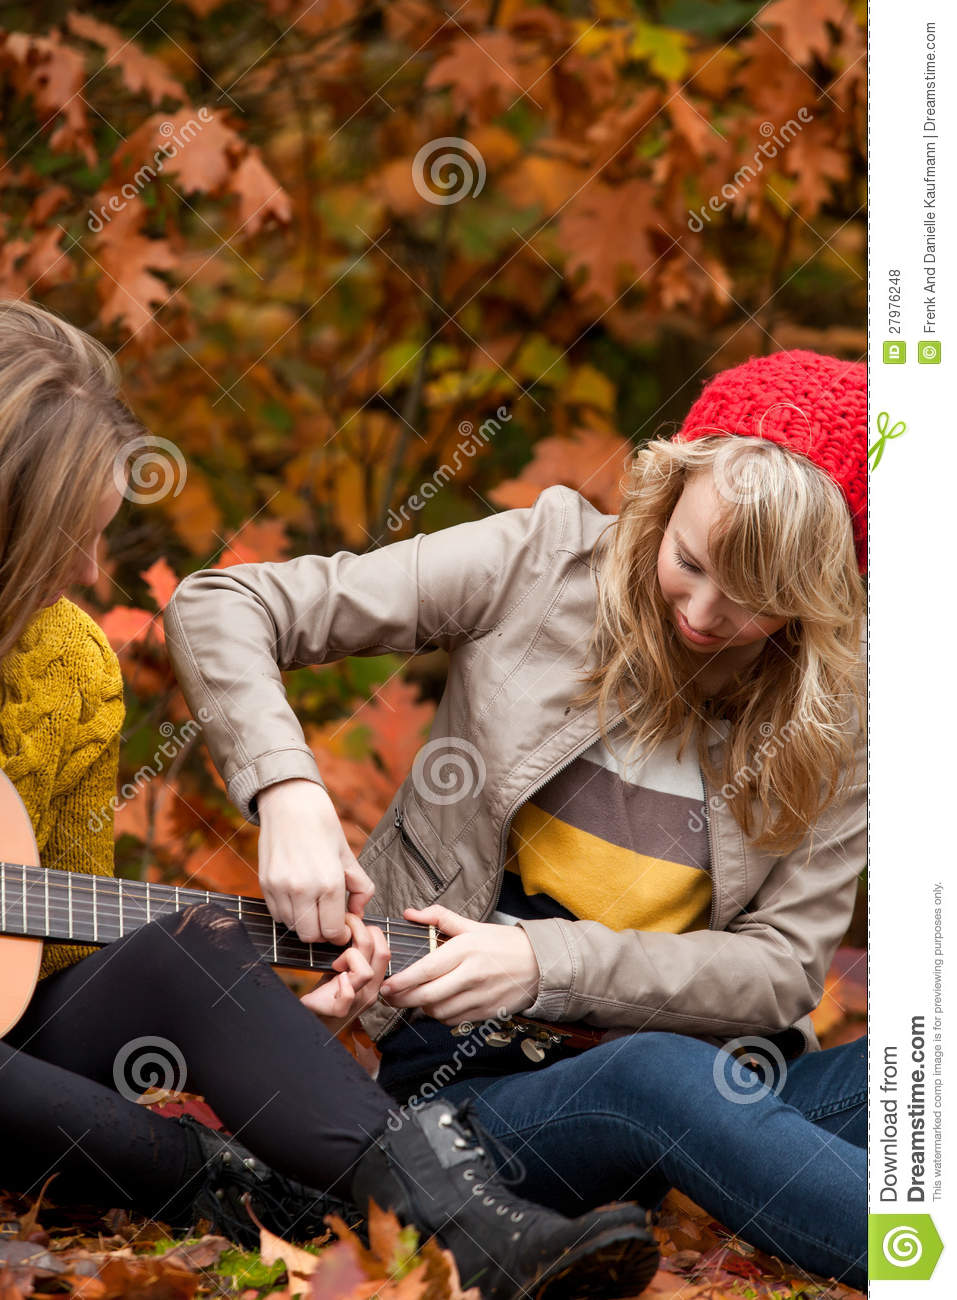 Learning playing guitar